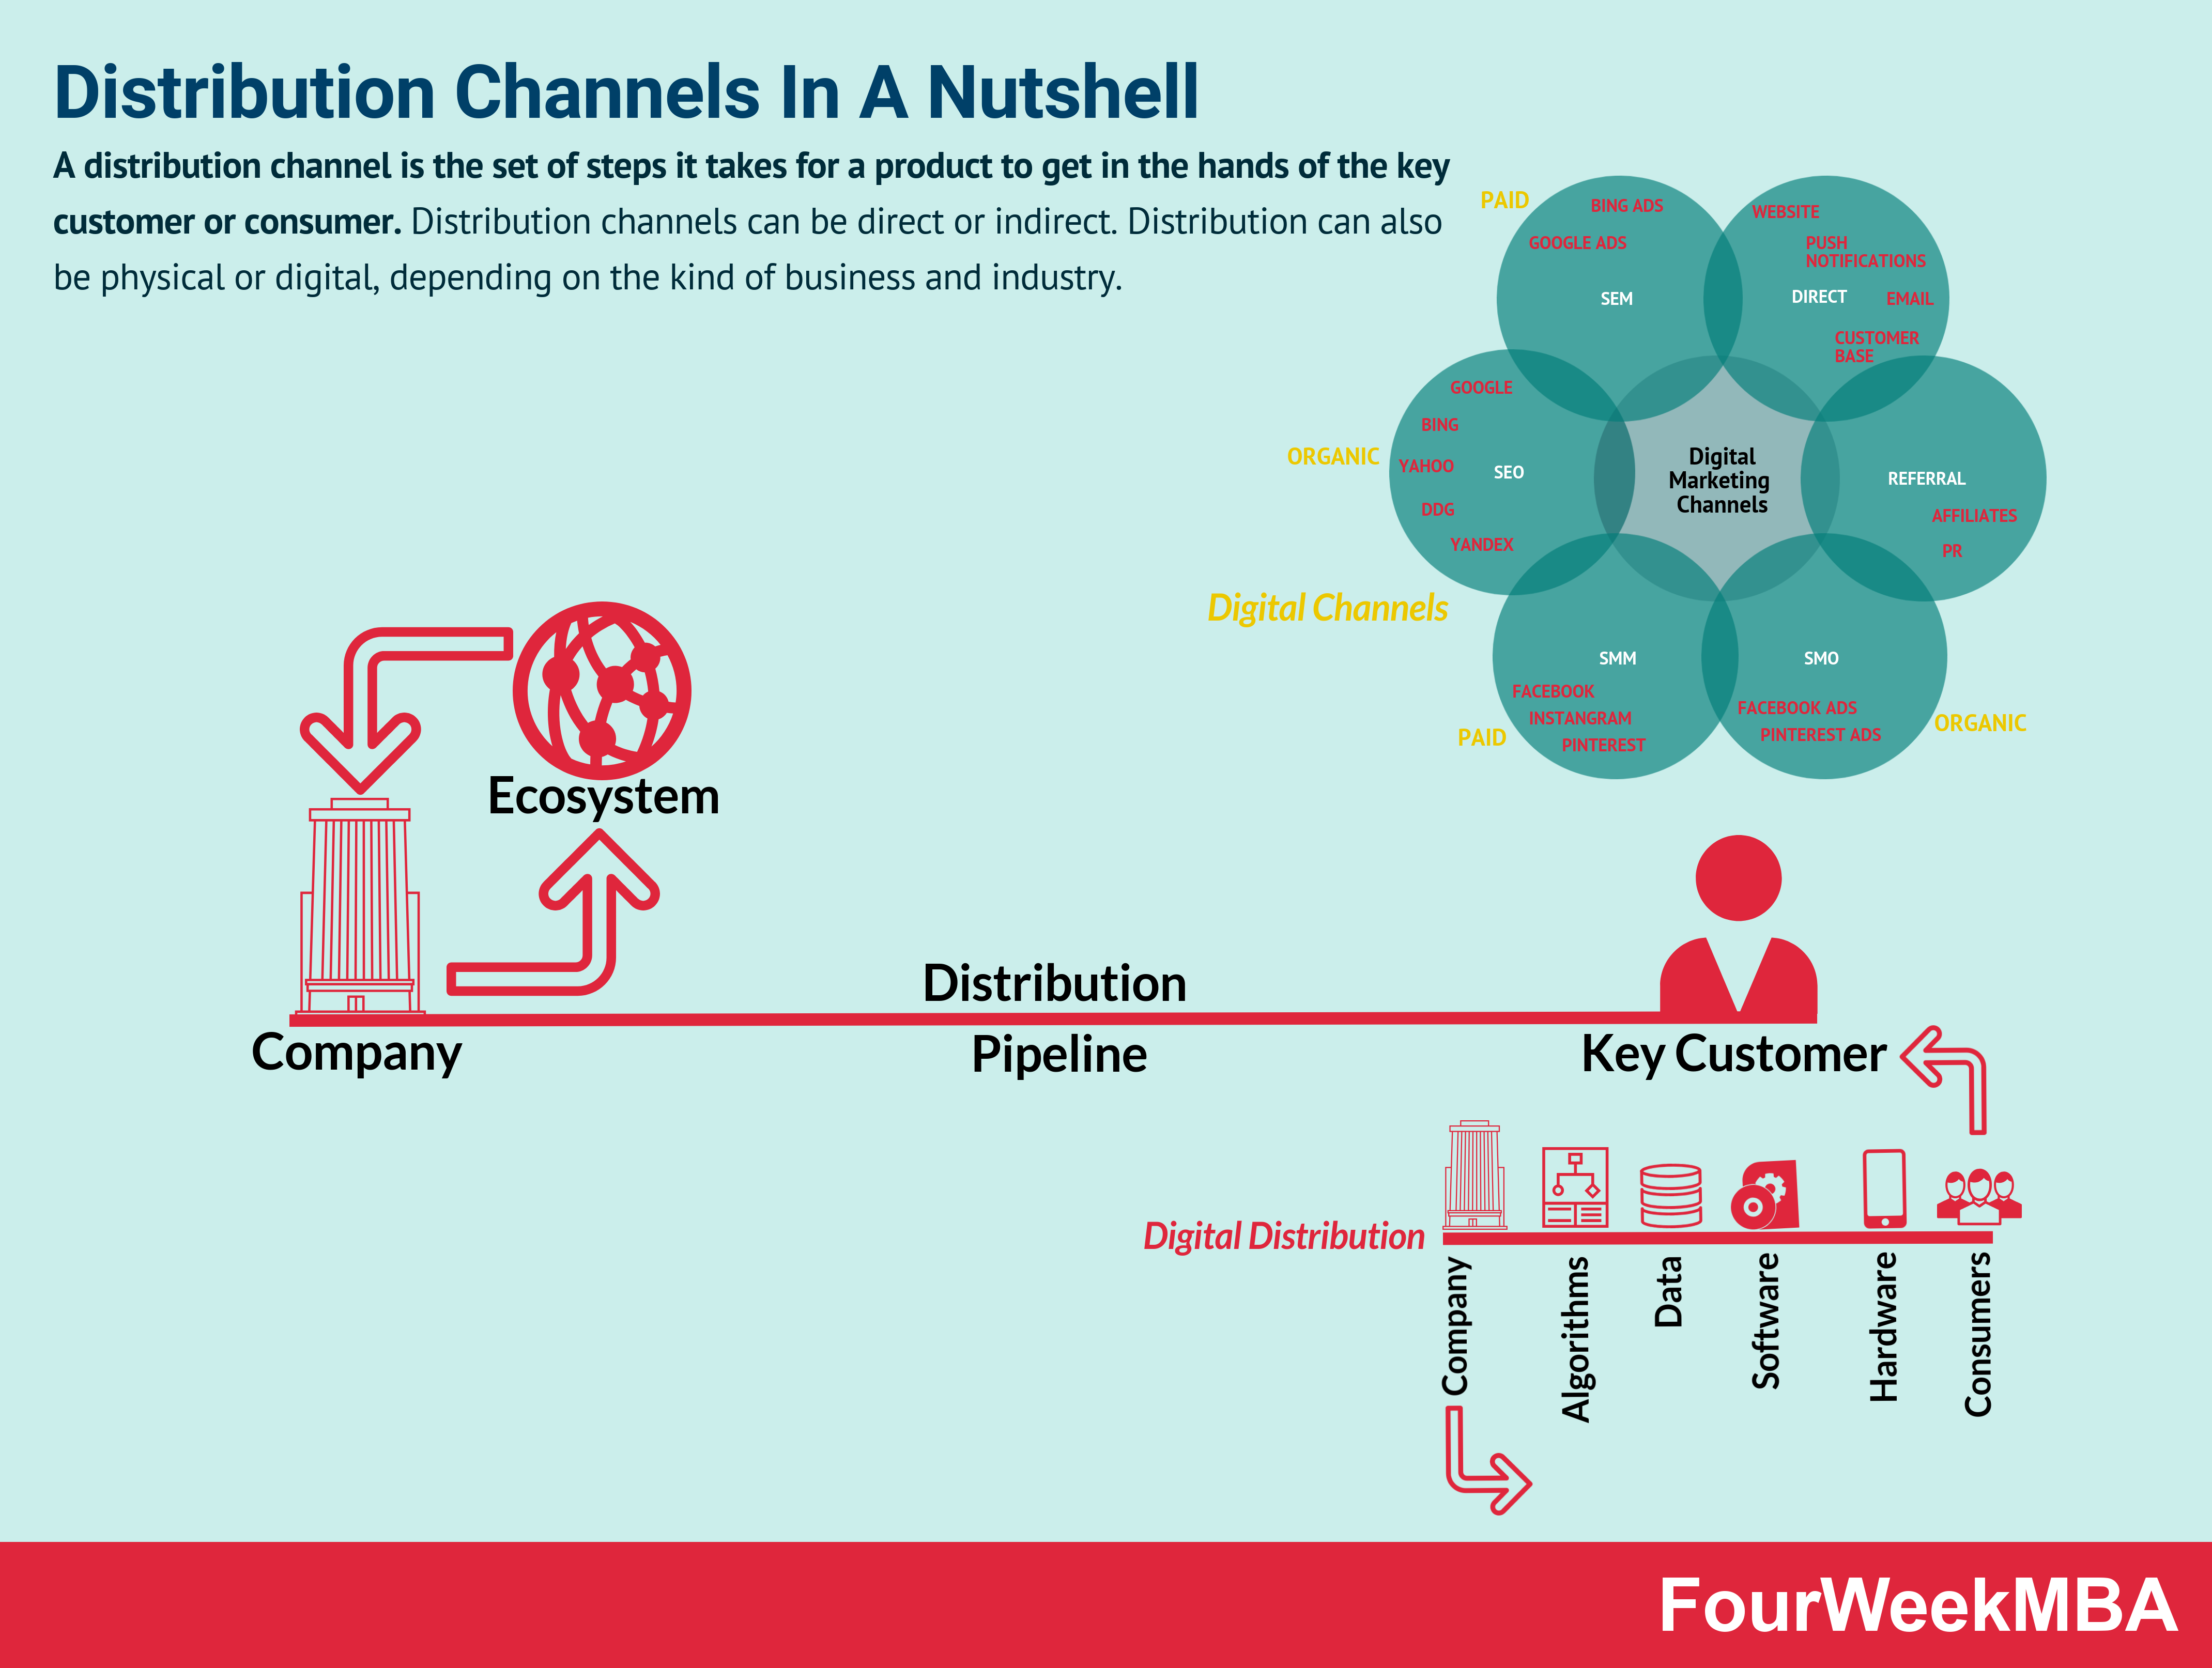 Distribution Channels: Types, Functions, And Examples